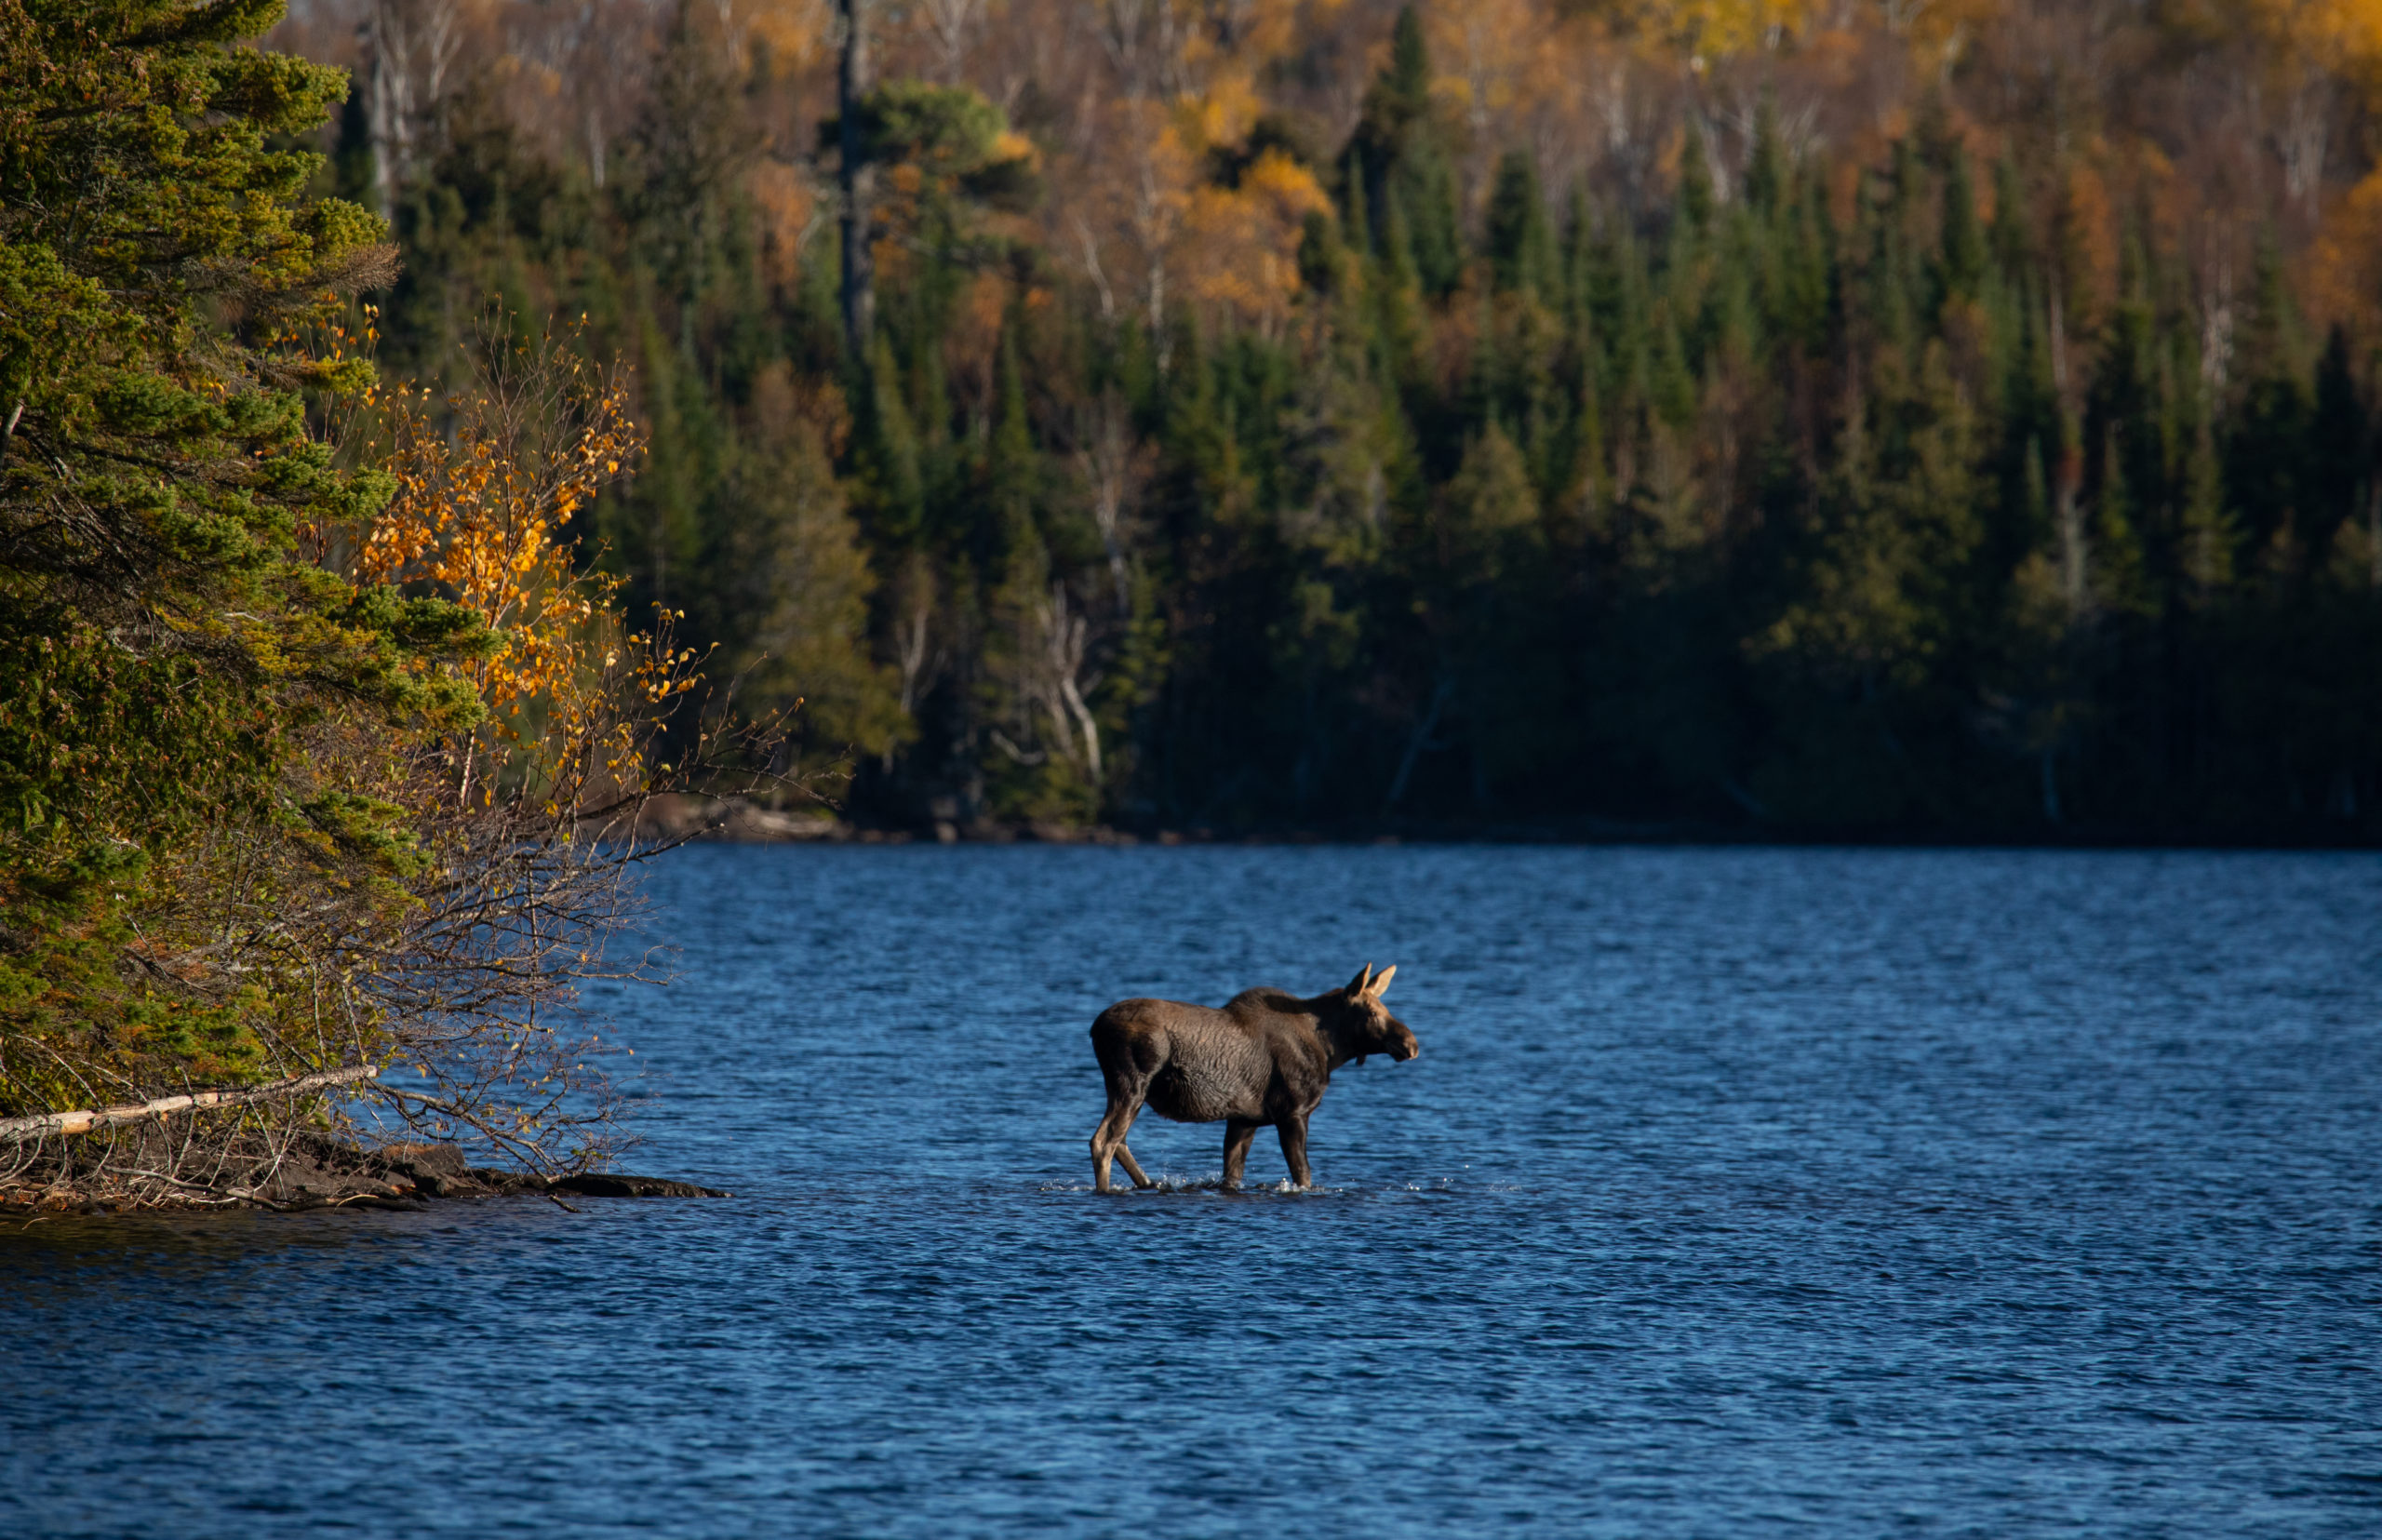 Subadult moose wadding in the shallows of a lake in northern Minnesota